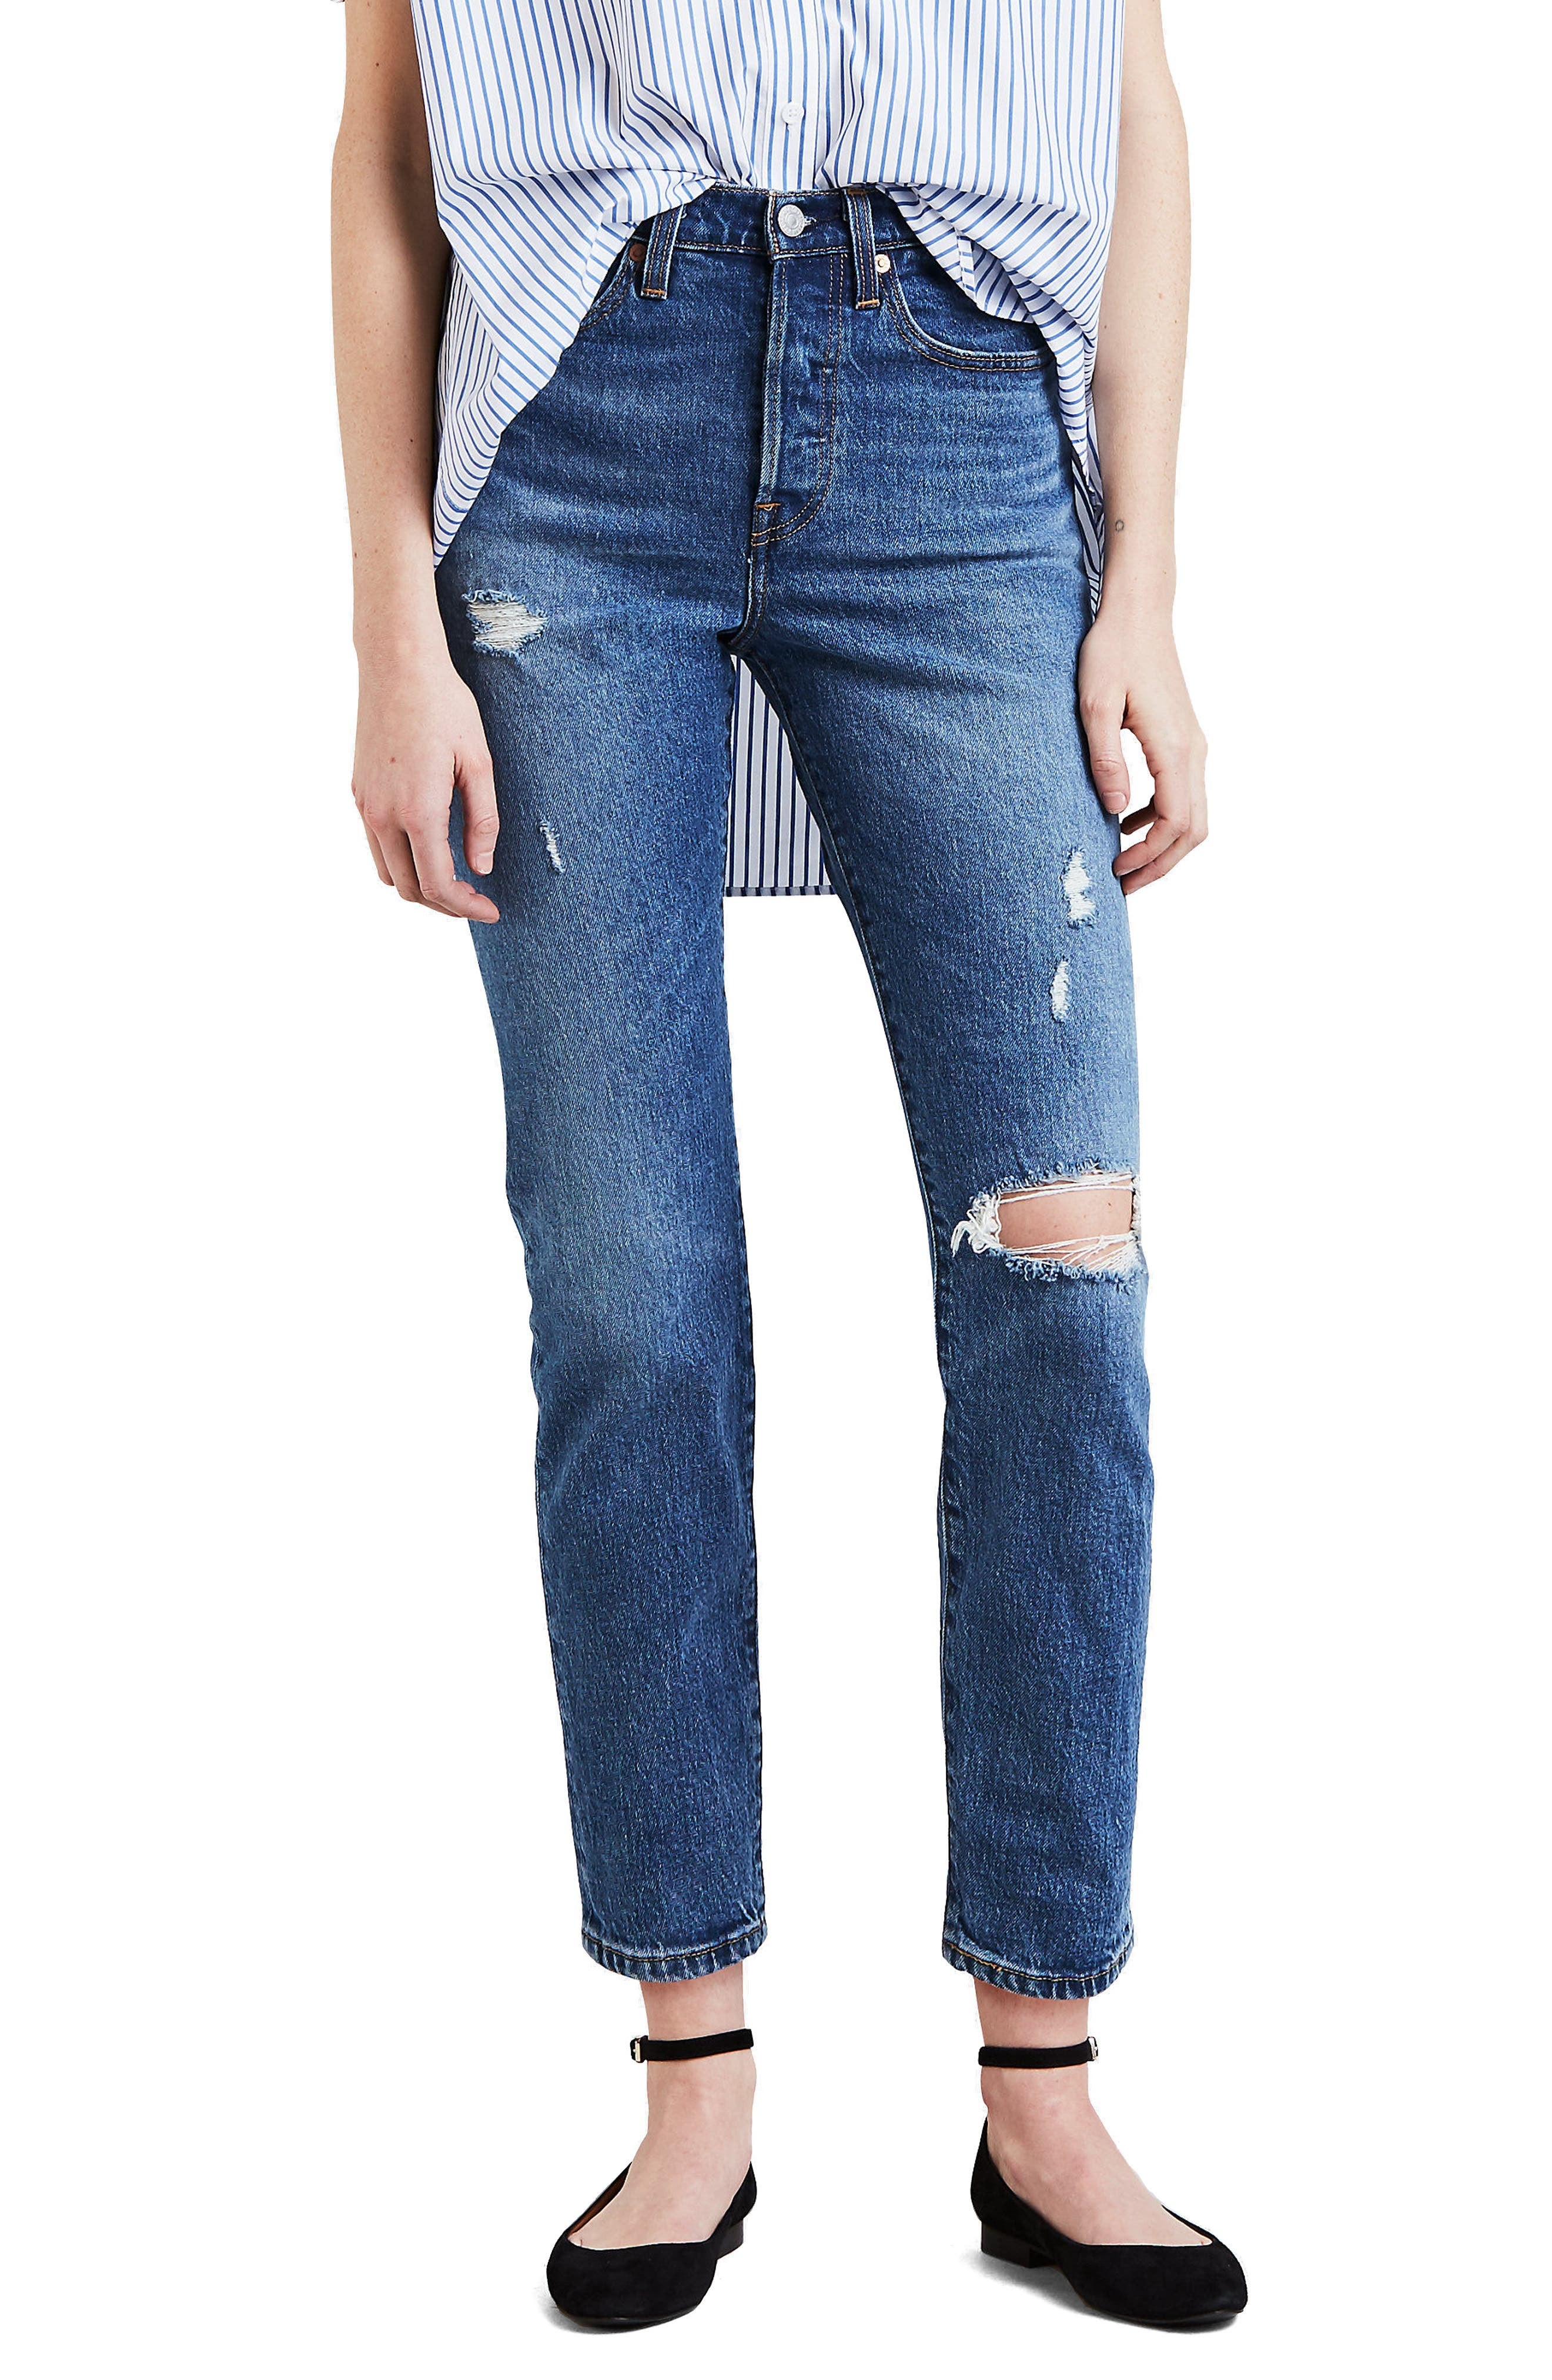 Wedgie Icon Fit Ripped High Waist Ankle Jeans,                         Main,                         color, HIGHER LOVE